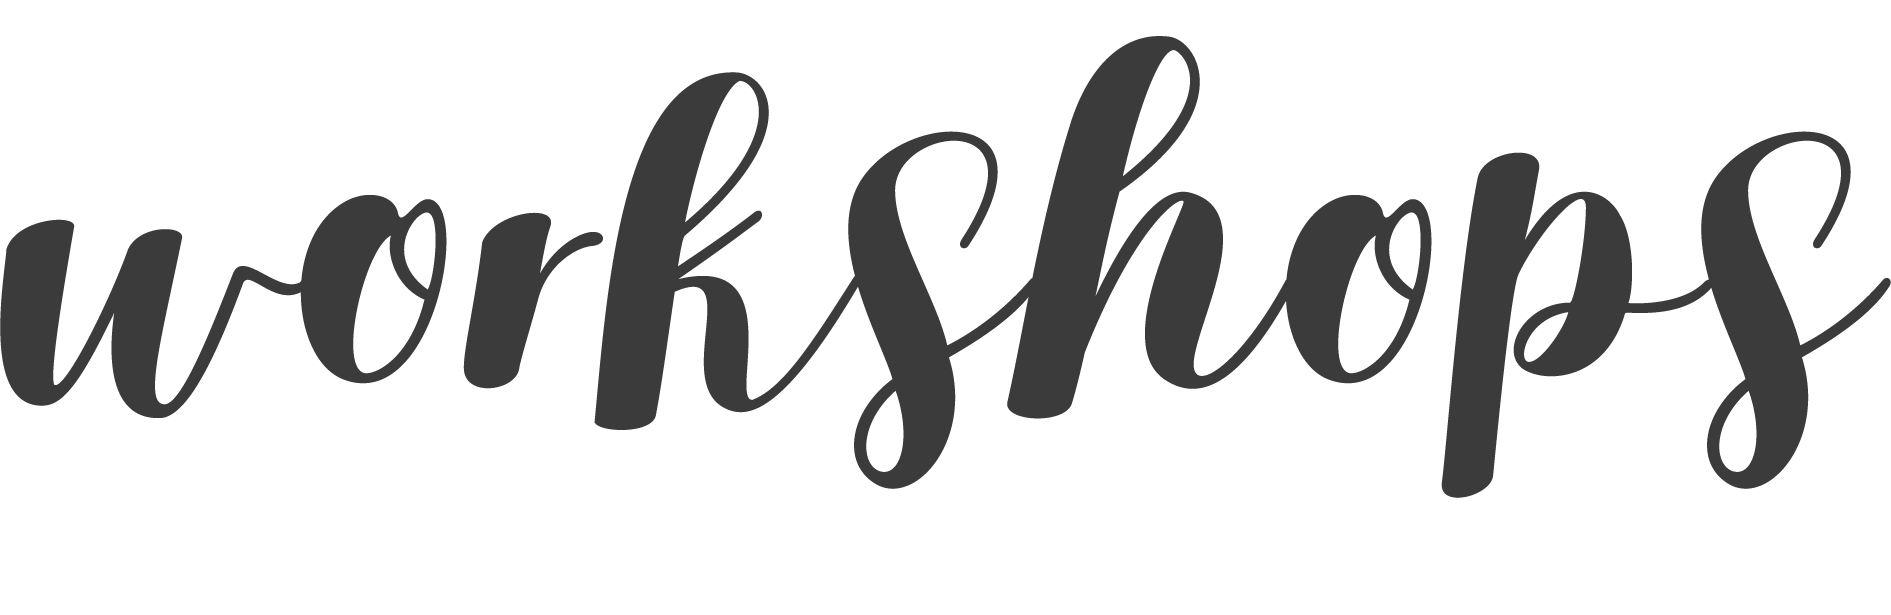 "The word ""workshops"" in a cursive font"